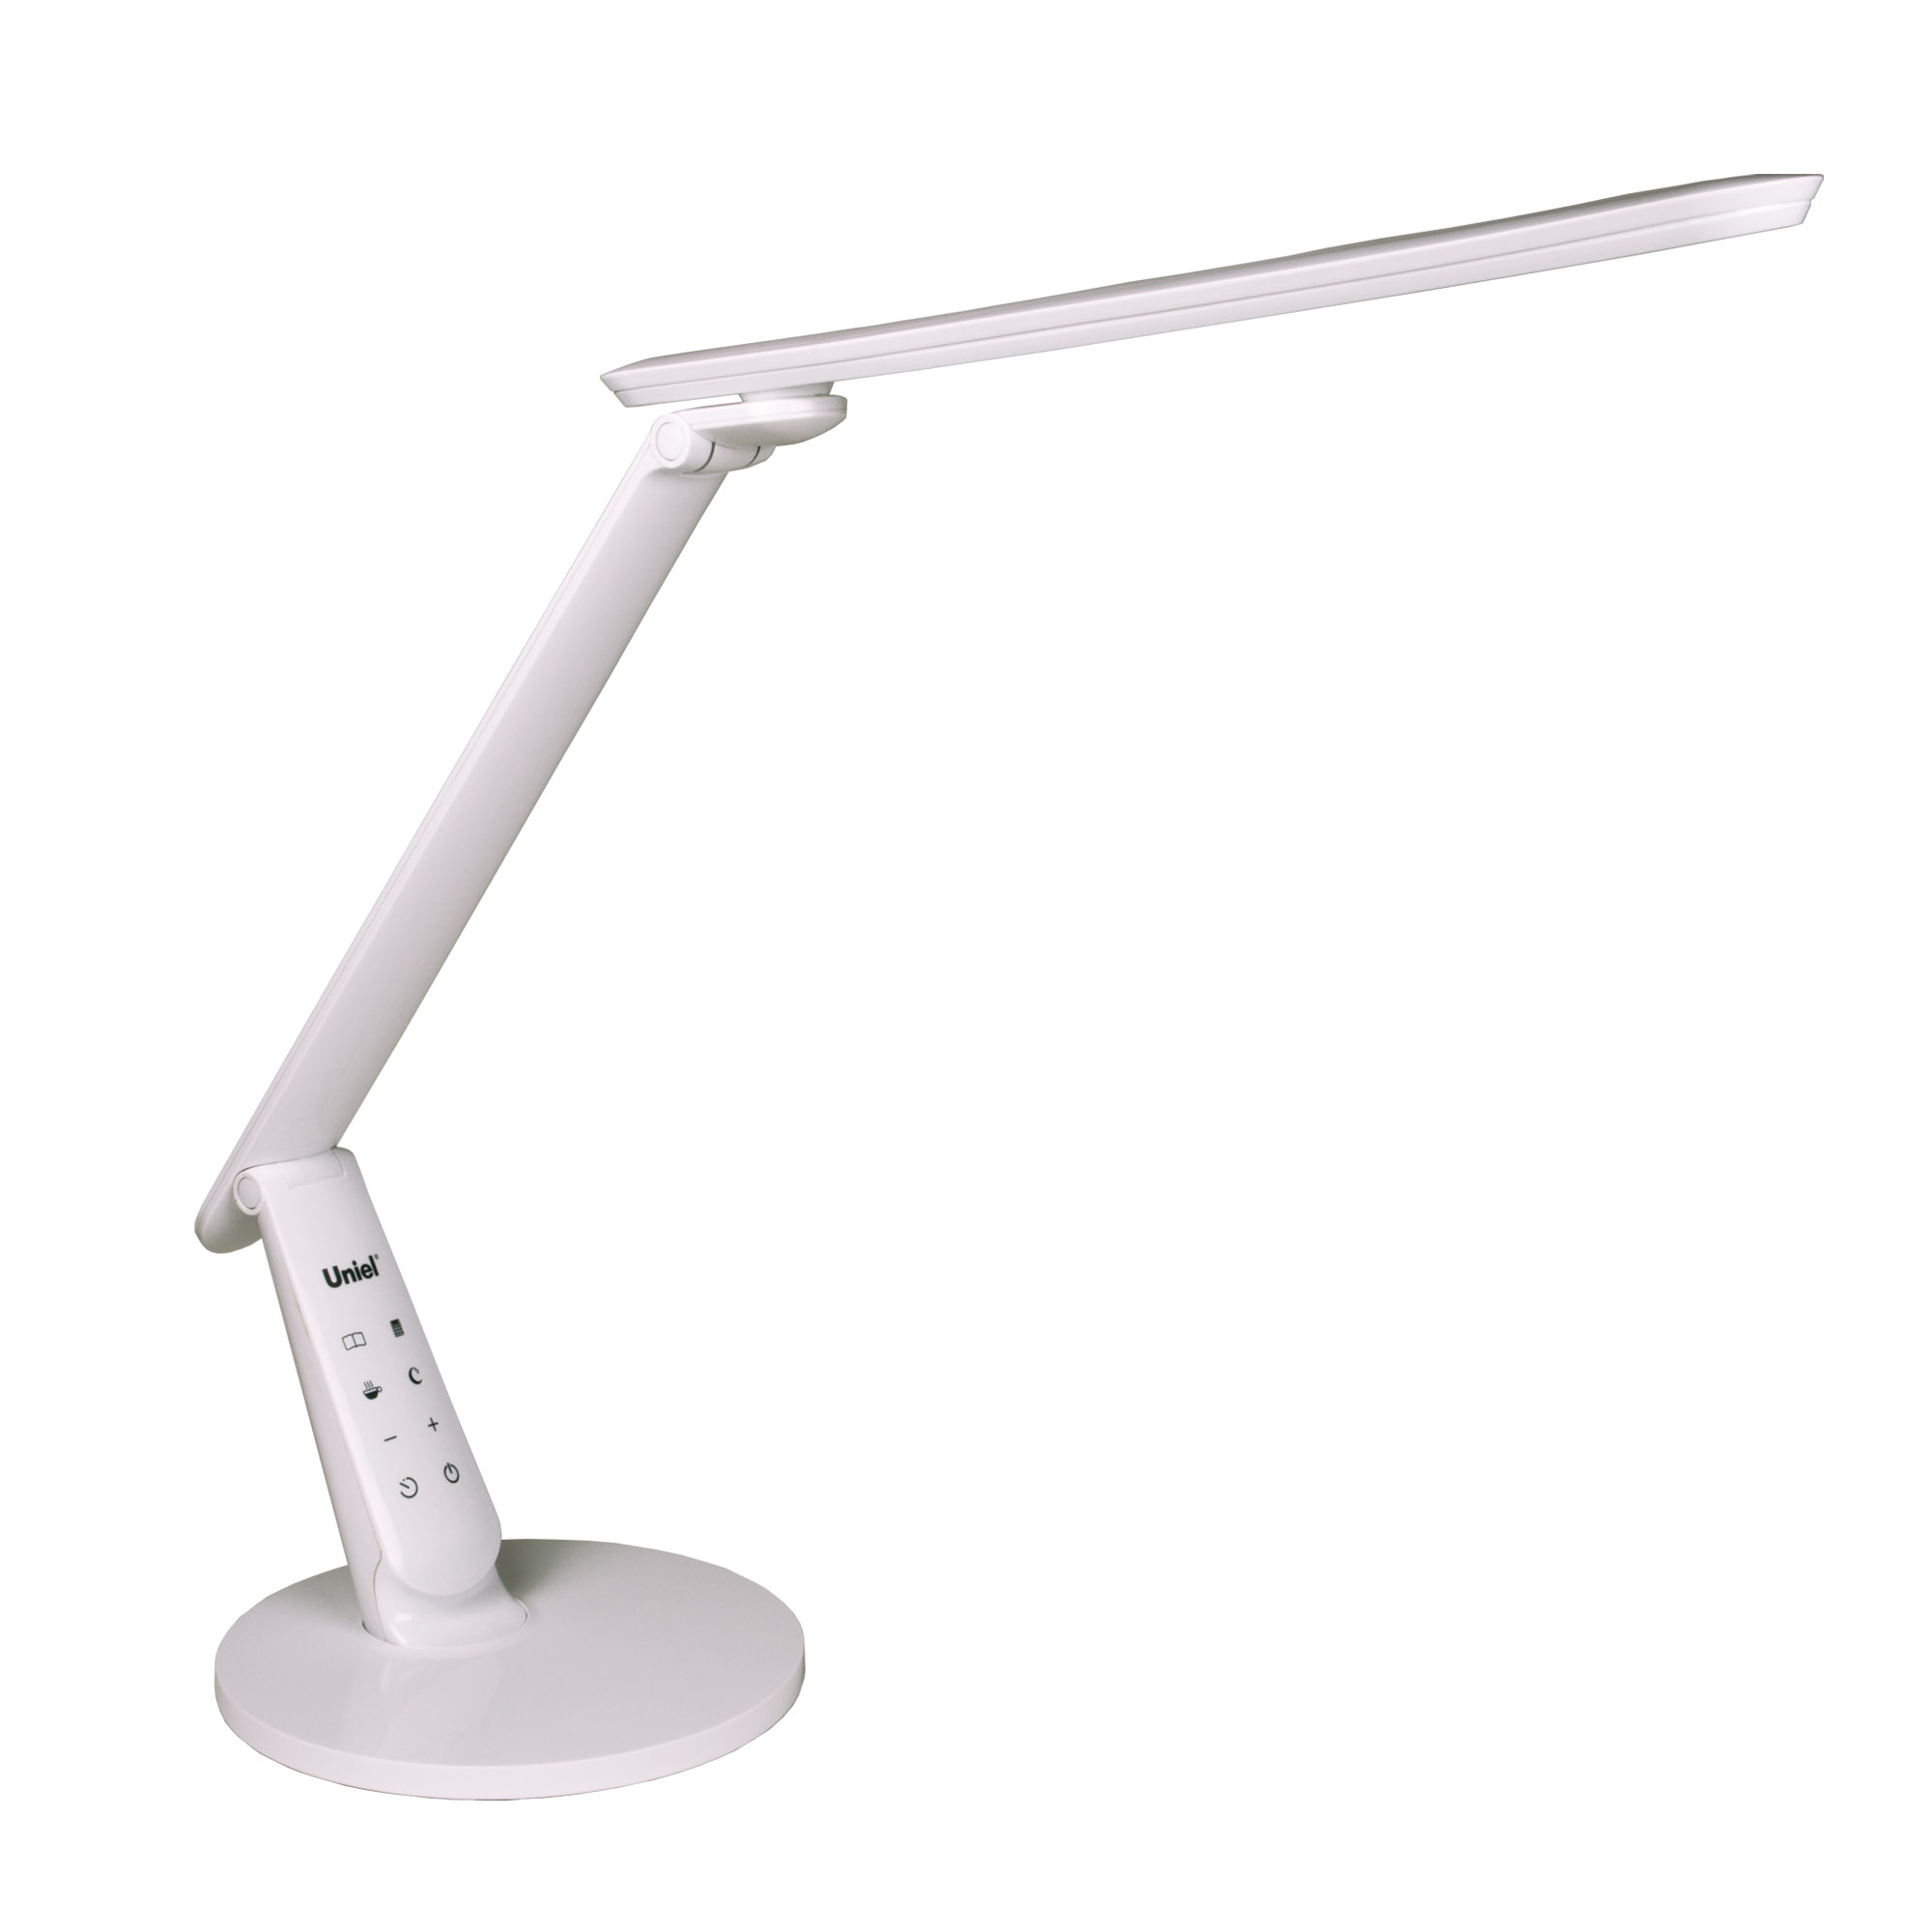 Лампа настольная Uniel Tld-526 white/led/650lm/4color/dimmer/usb